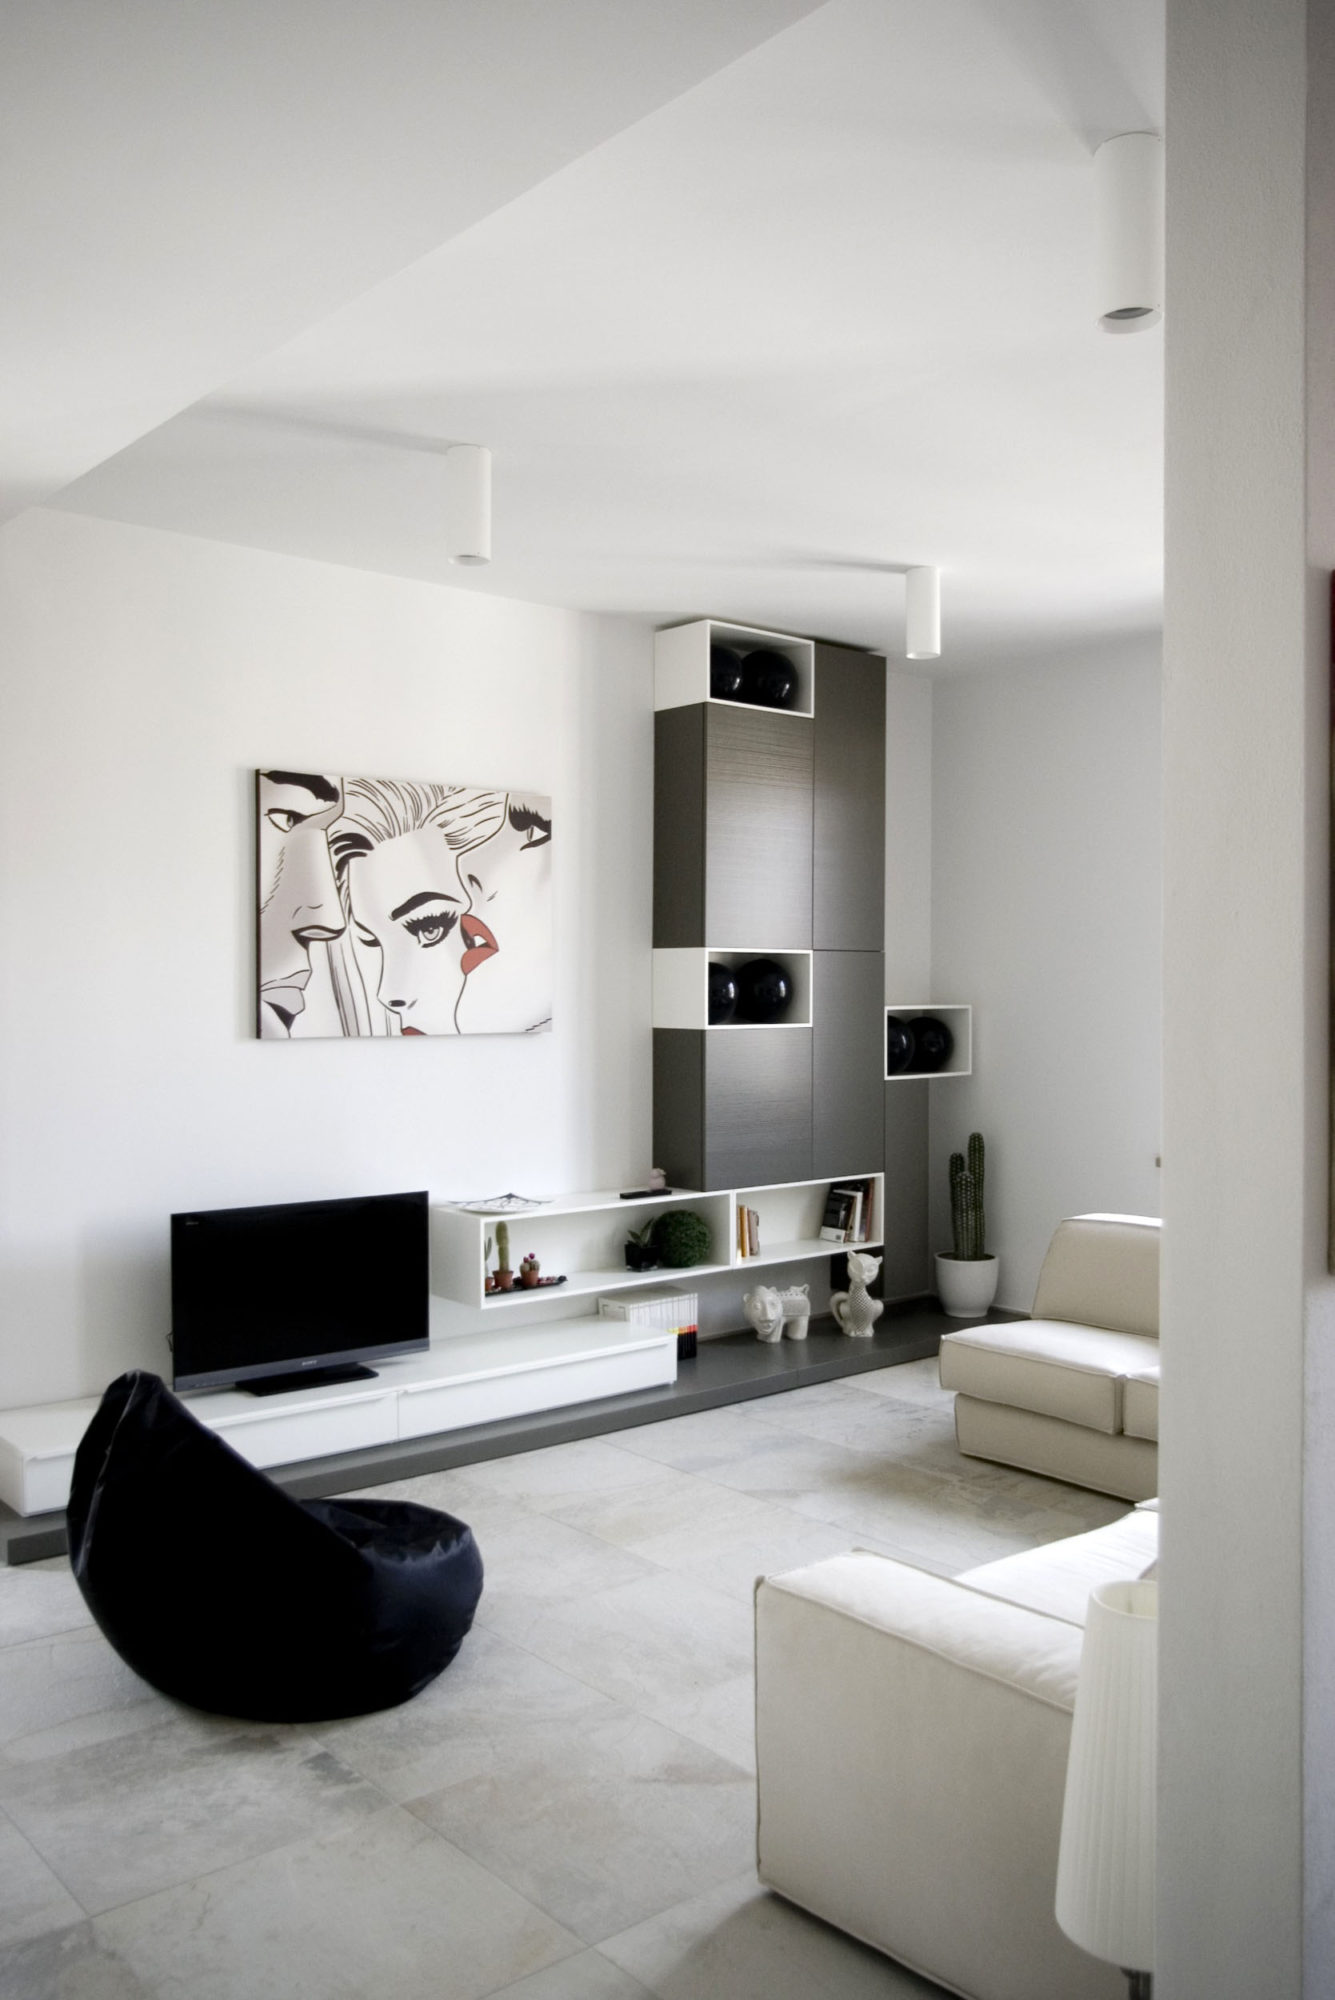 Minimalist interior by msx2 architettura for Modern small flat interior design